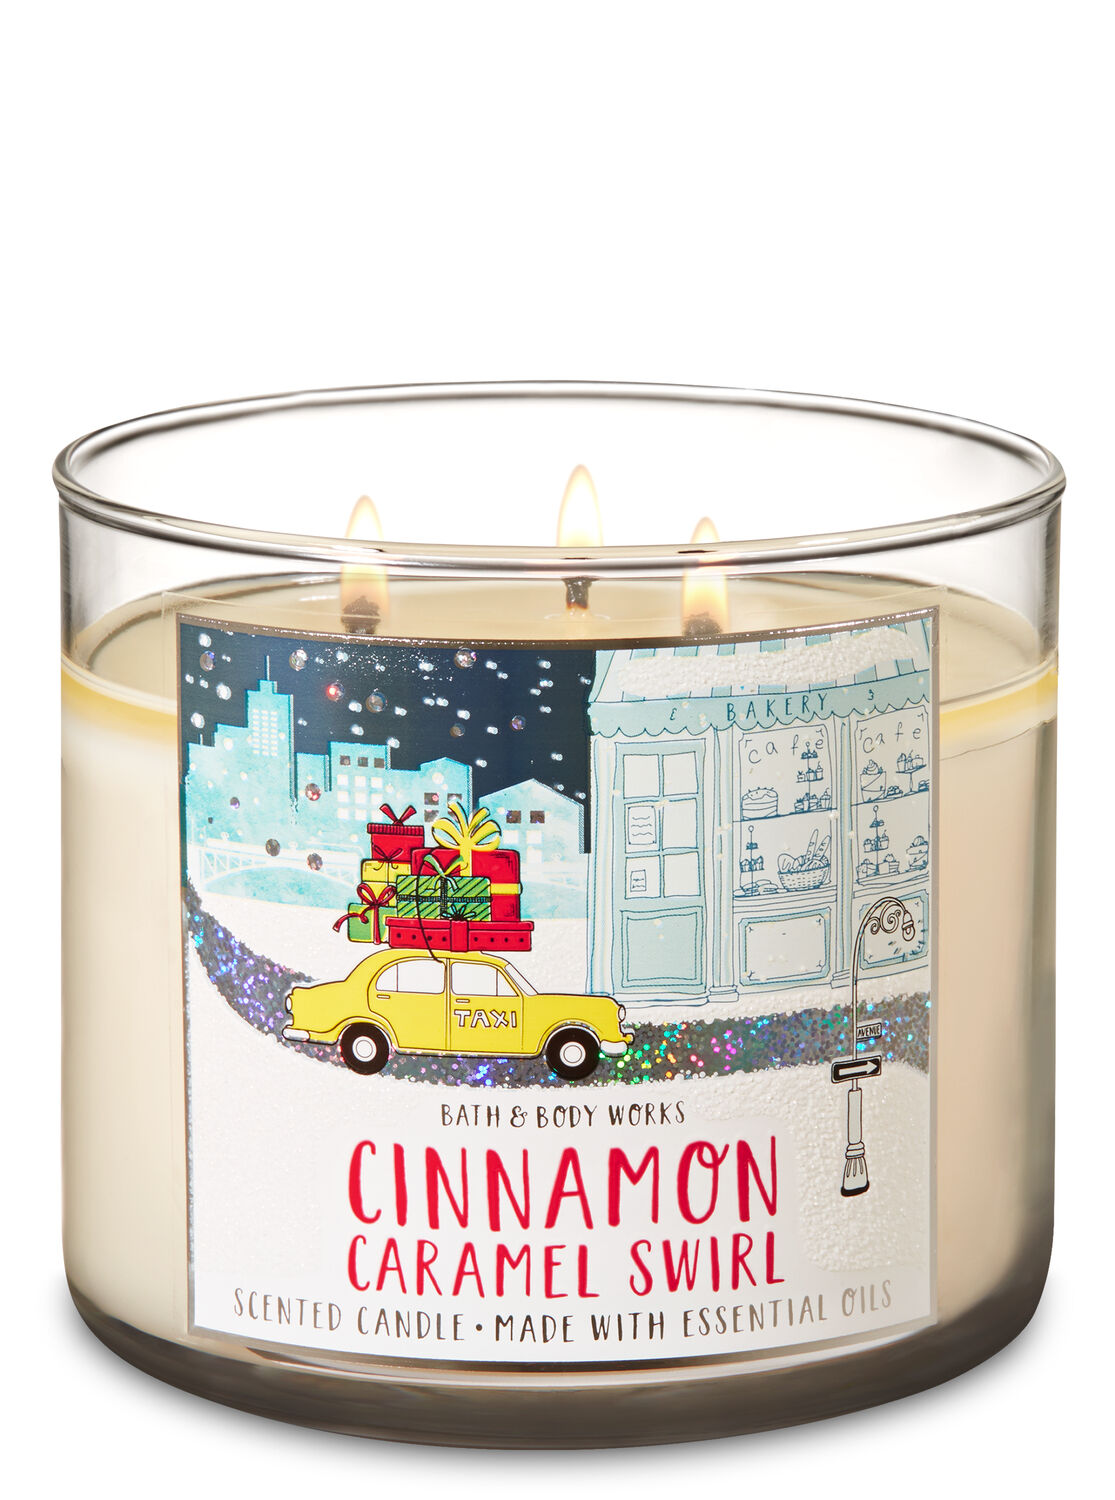 Cinnamon Caramel Swirl 3-Wick Candle - Bath And Body Works